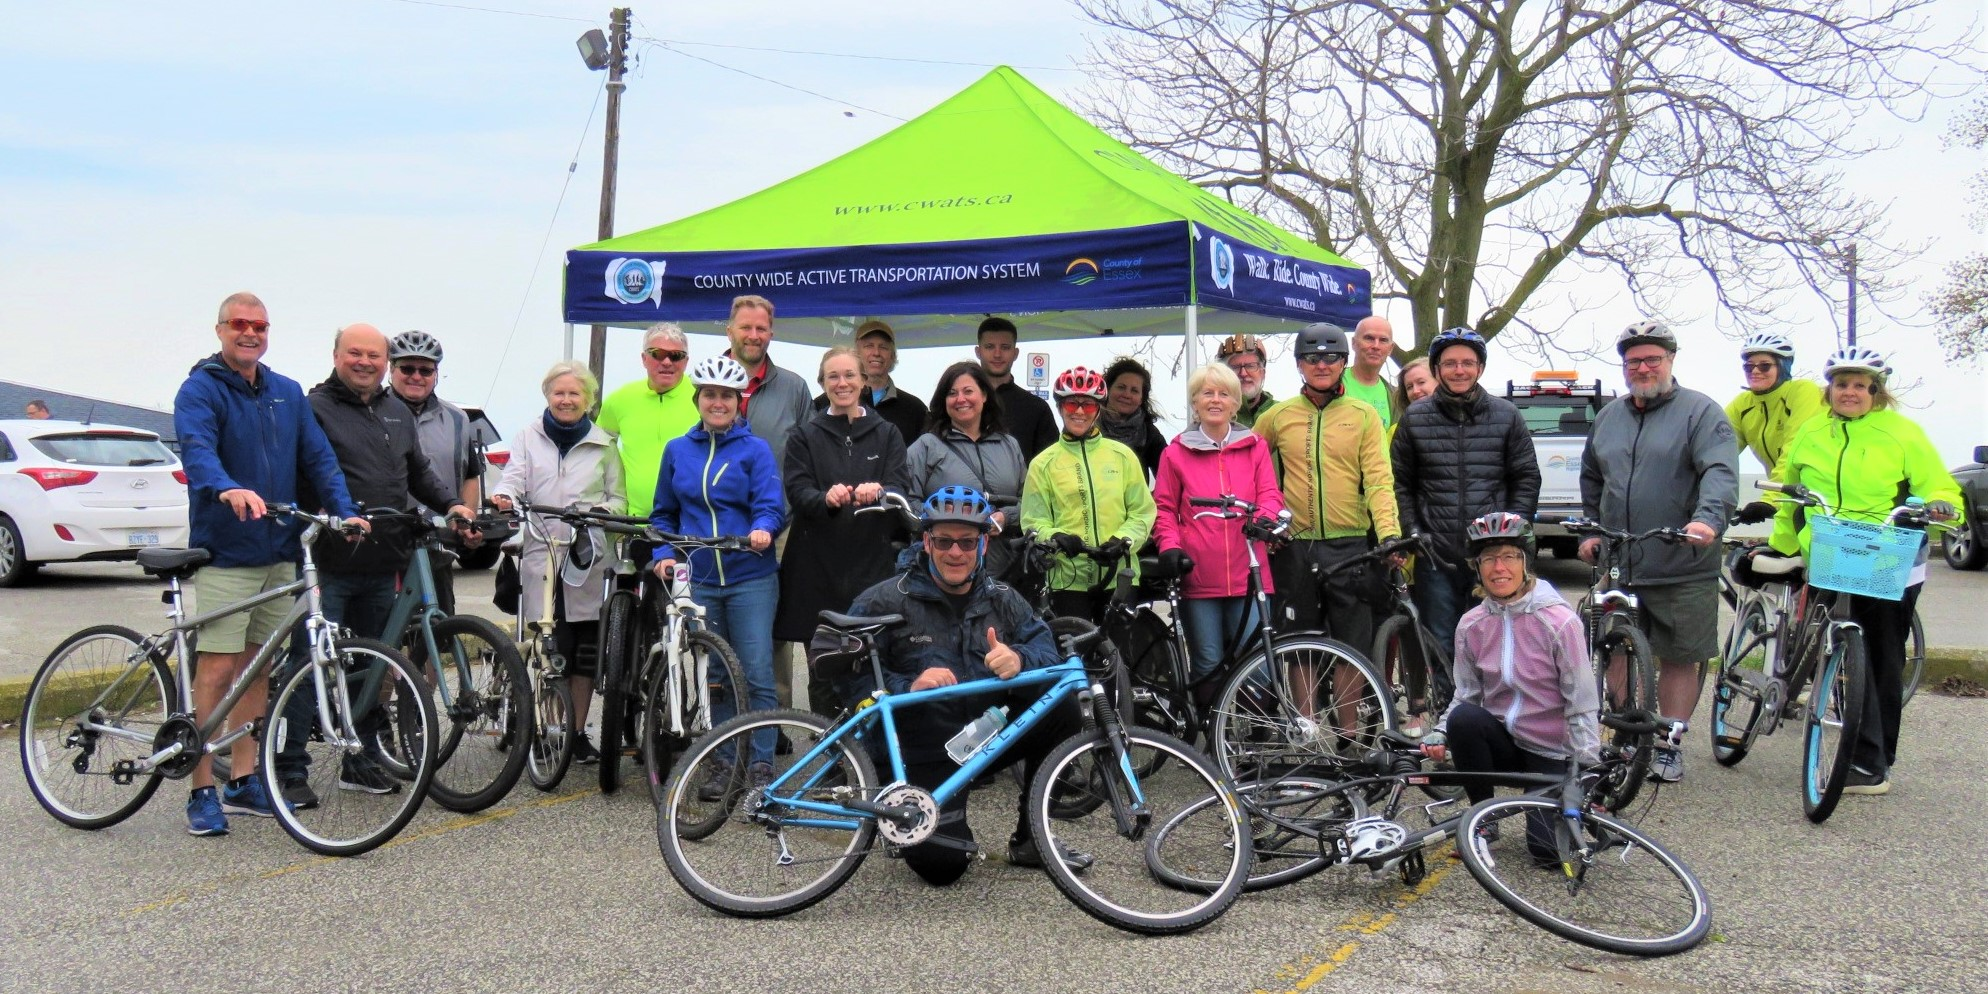 A group of cyclists pose in front of a CWATS tent at Colchester Harbour.